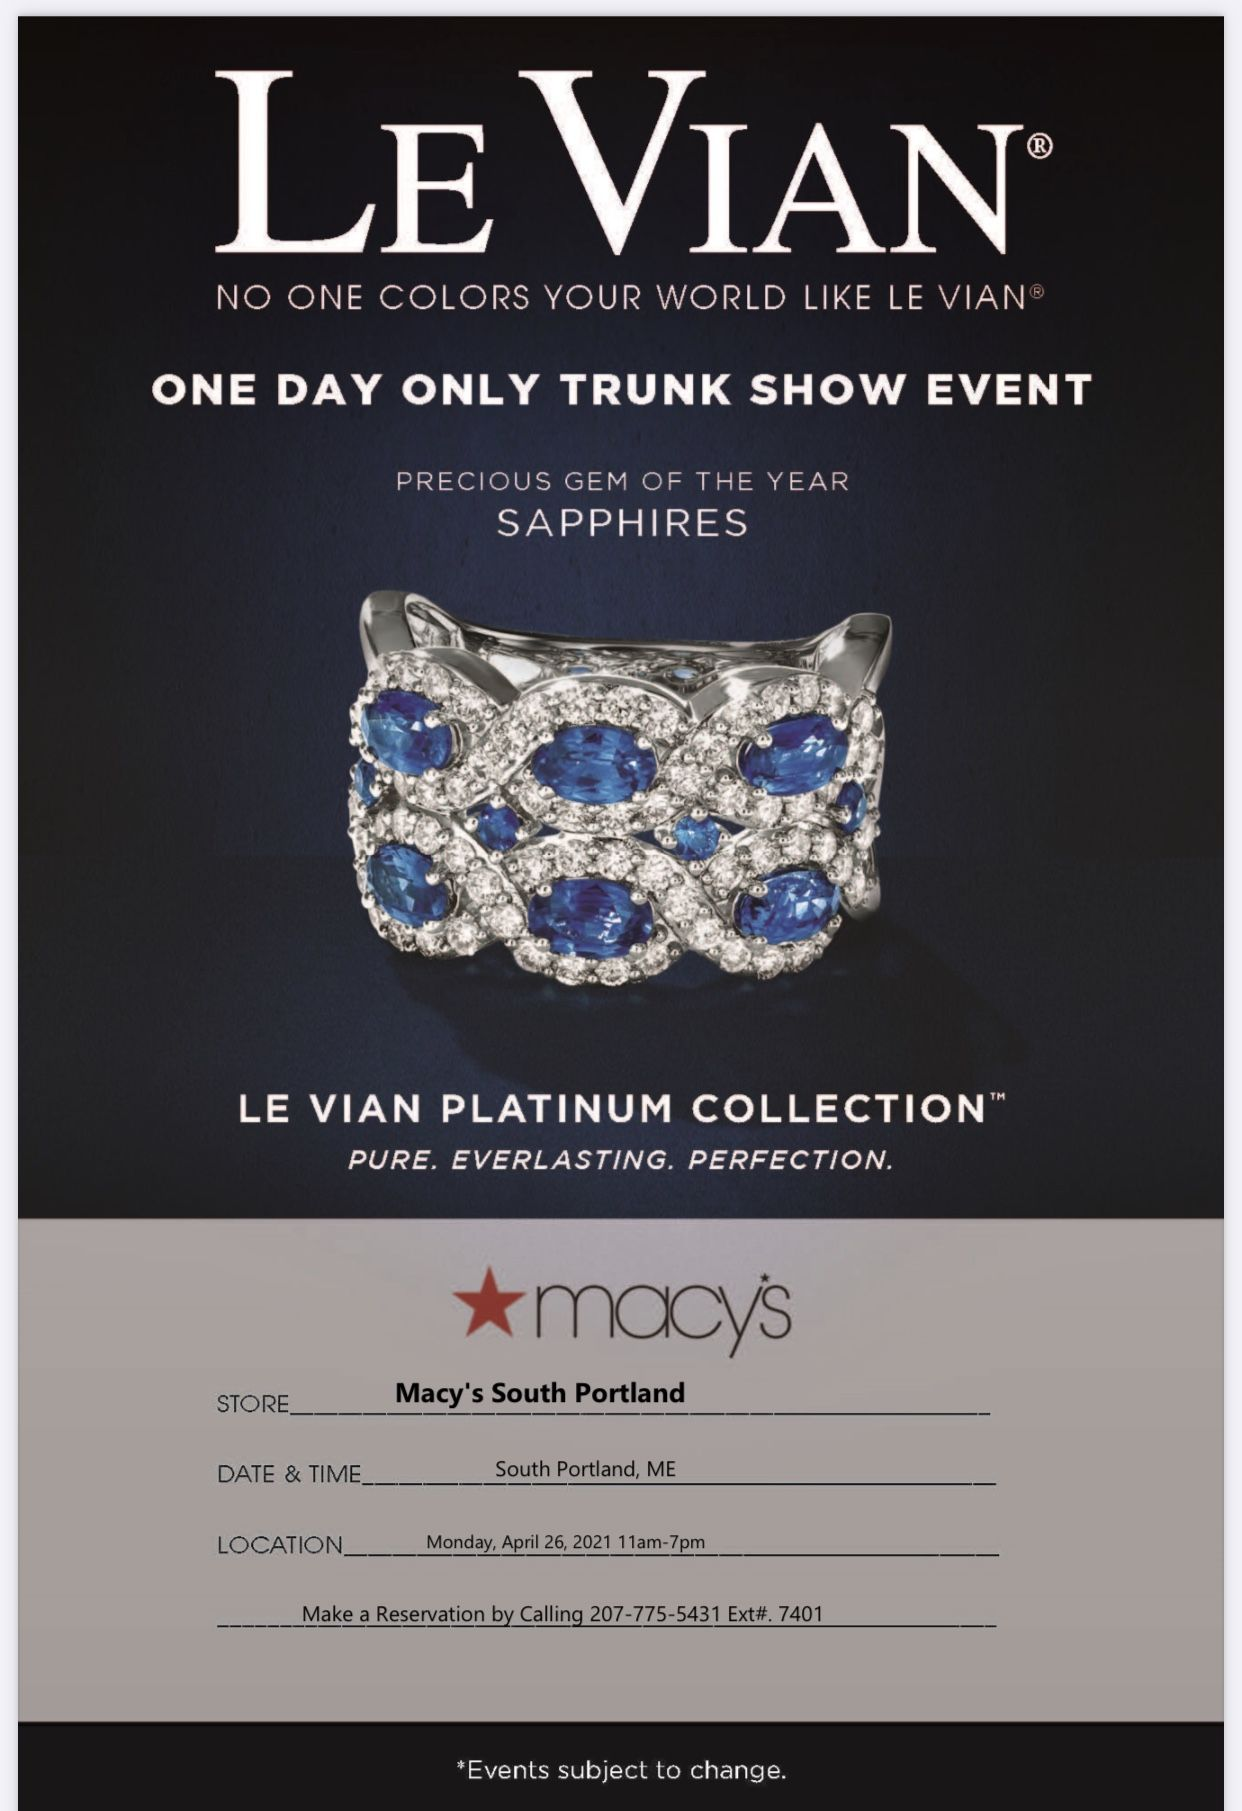 Macy's Le Vian One Day Only Trunk Show from macy's